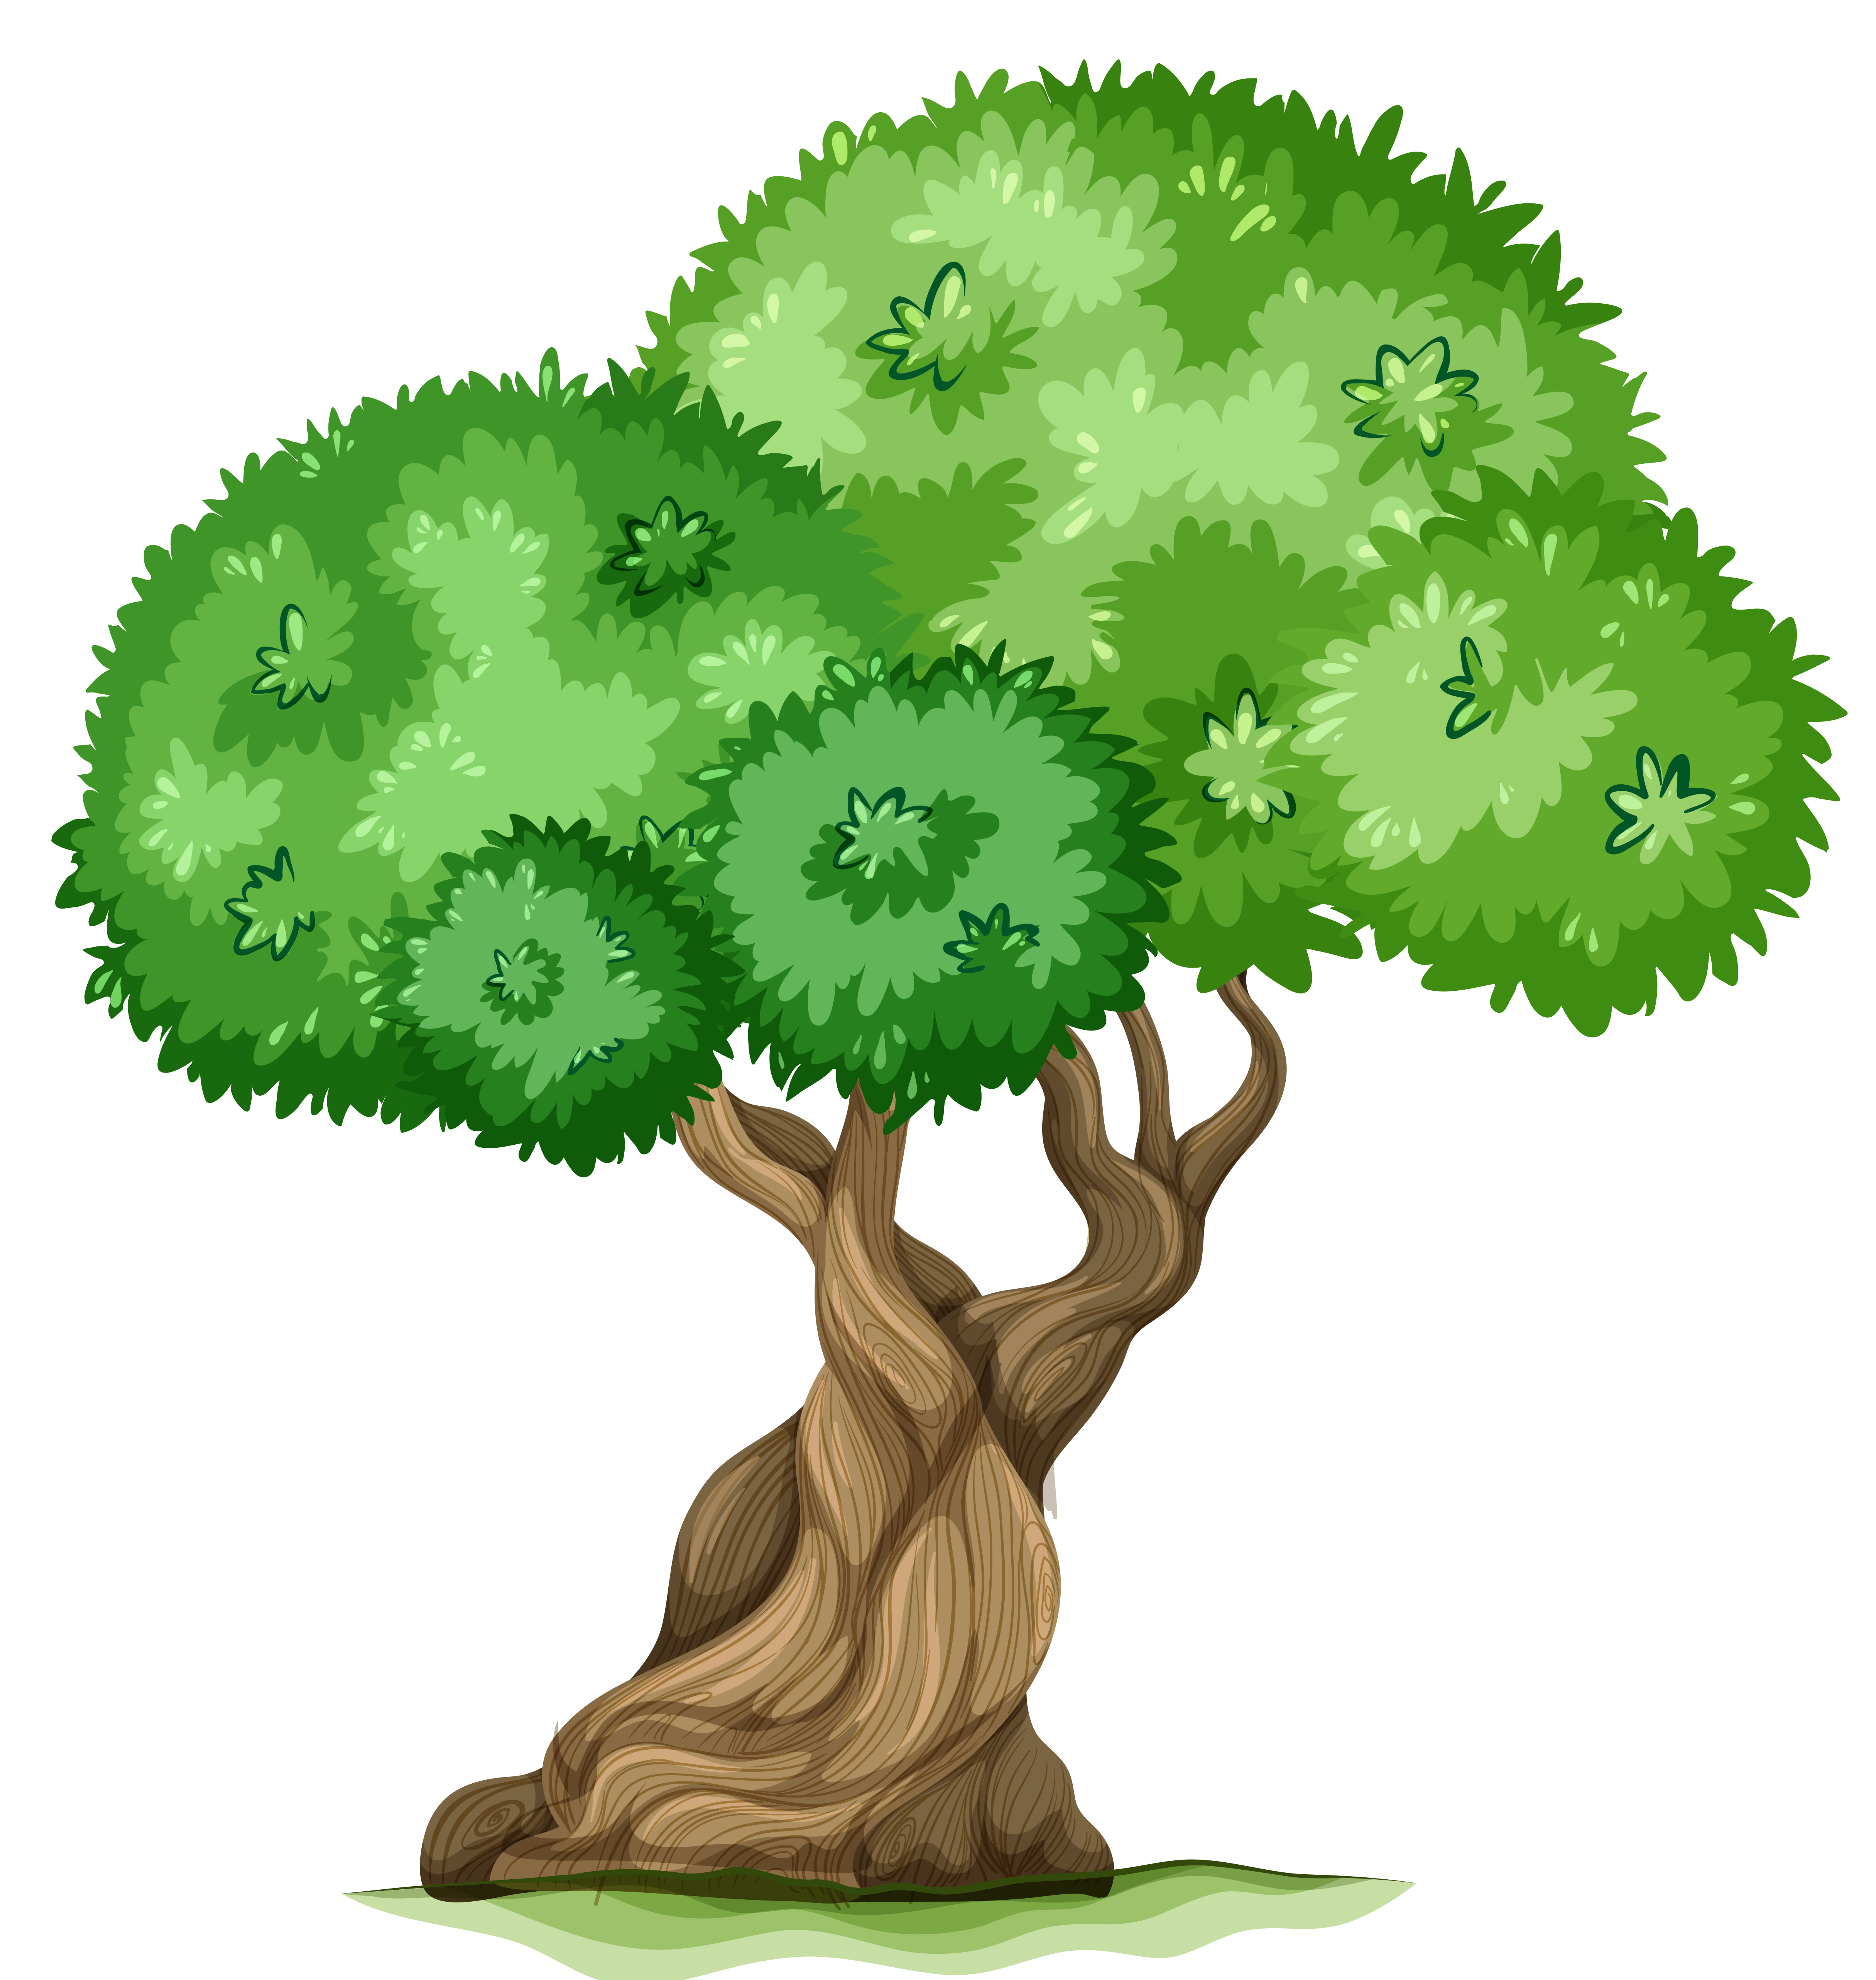 Png Clipart TreeClipartFest. - Tree Clipart PNG